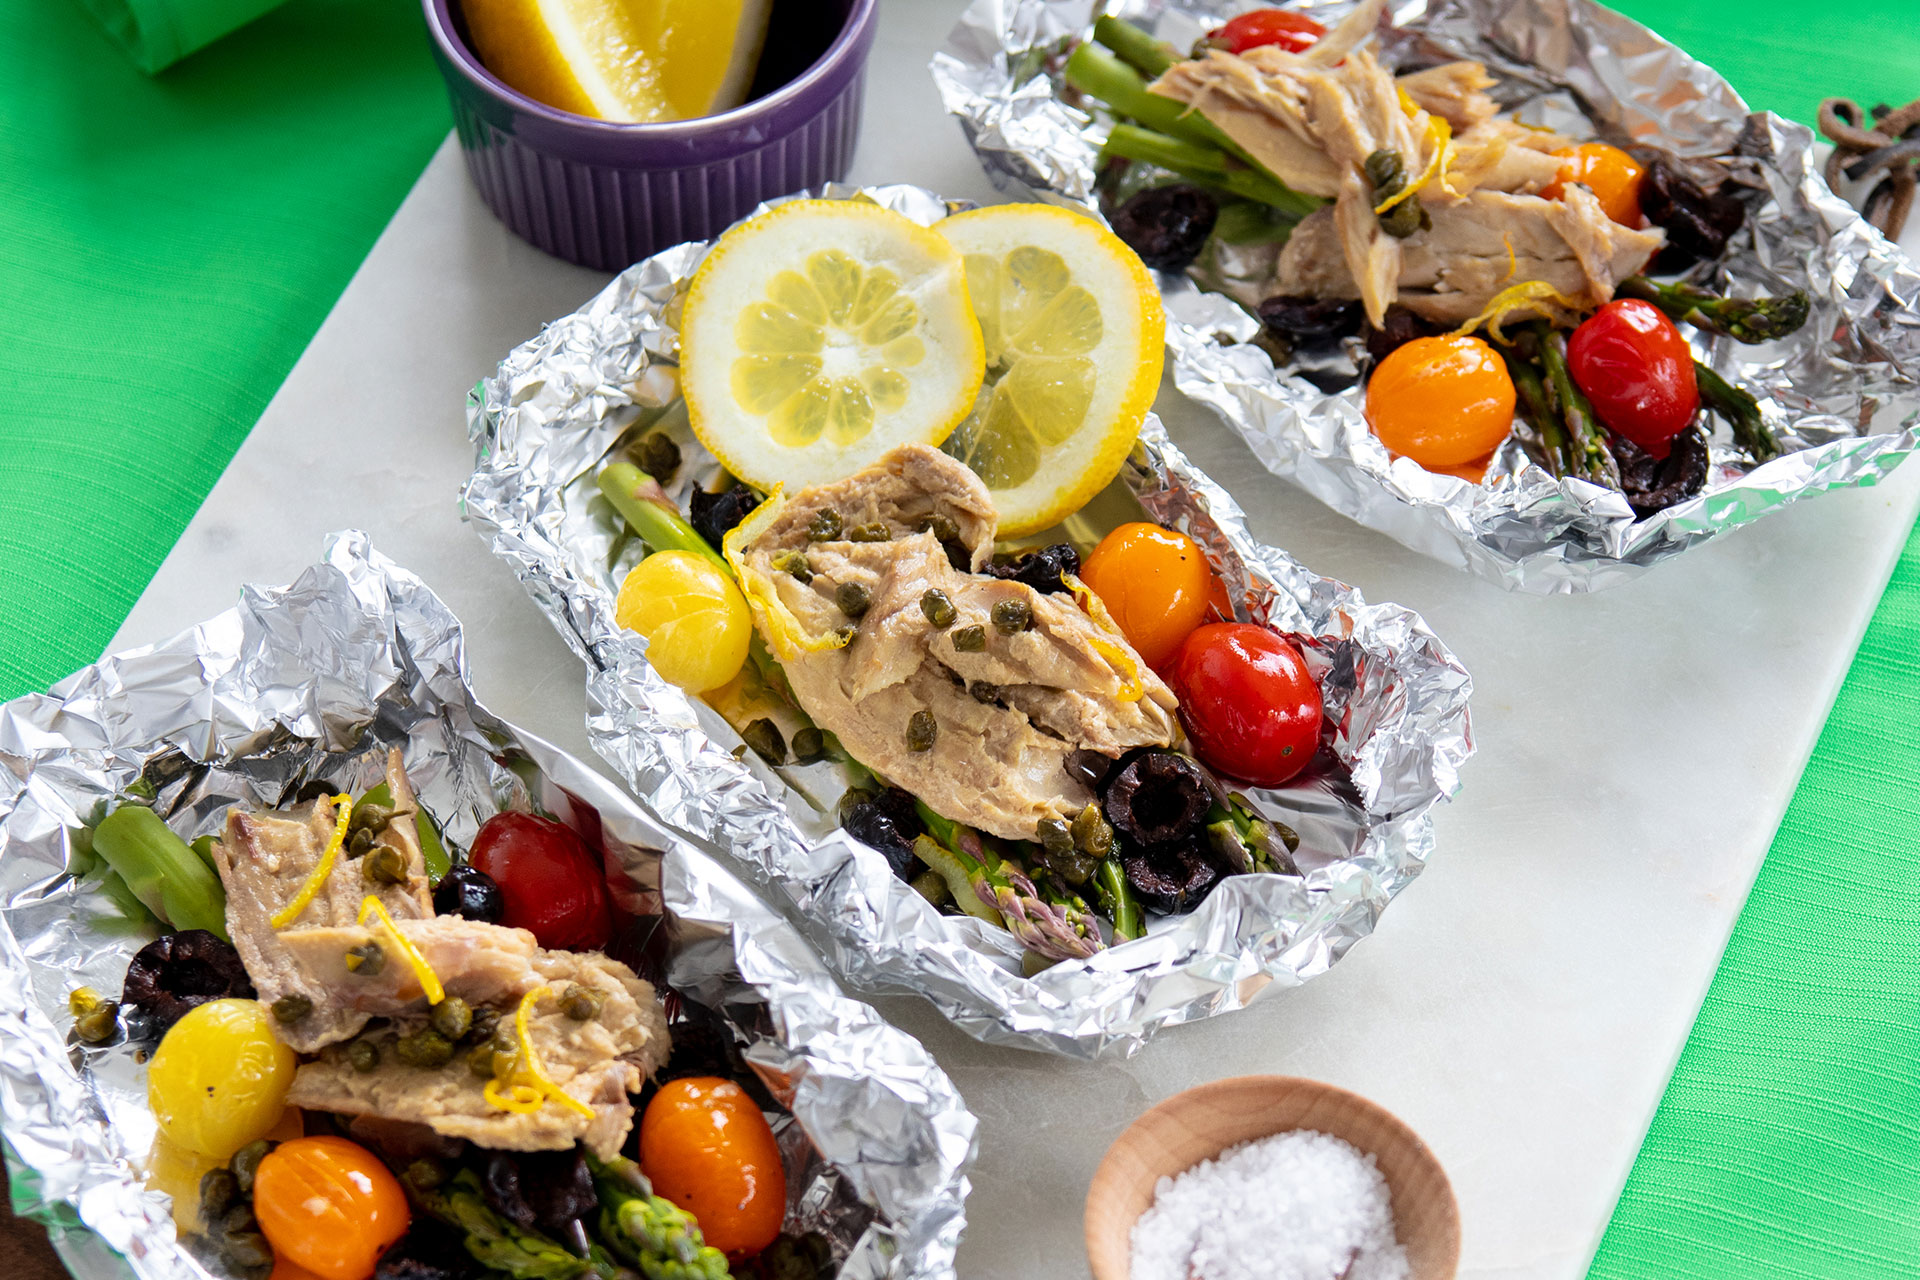 BBQ Mackerel Foil Packet